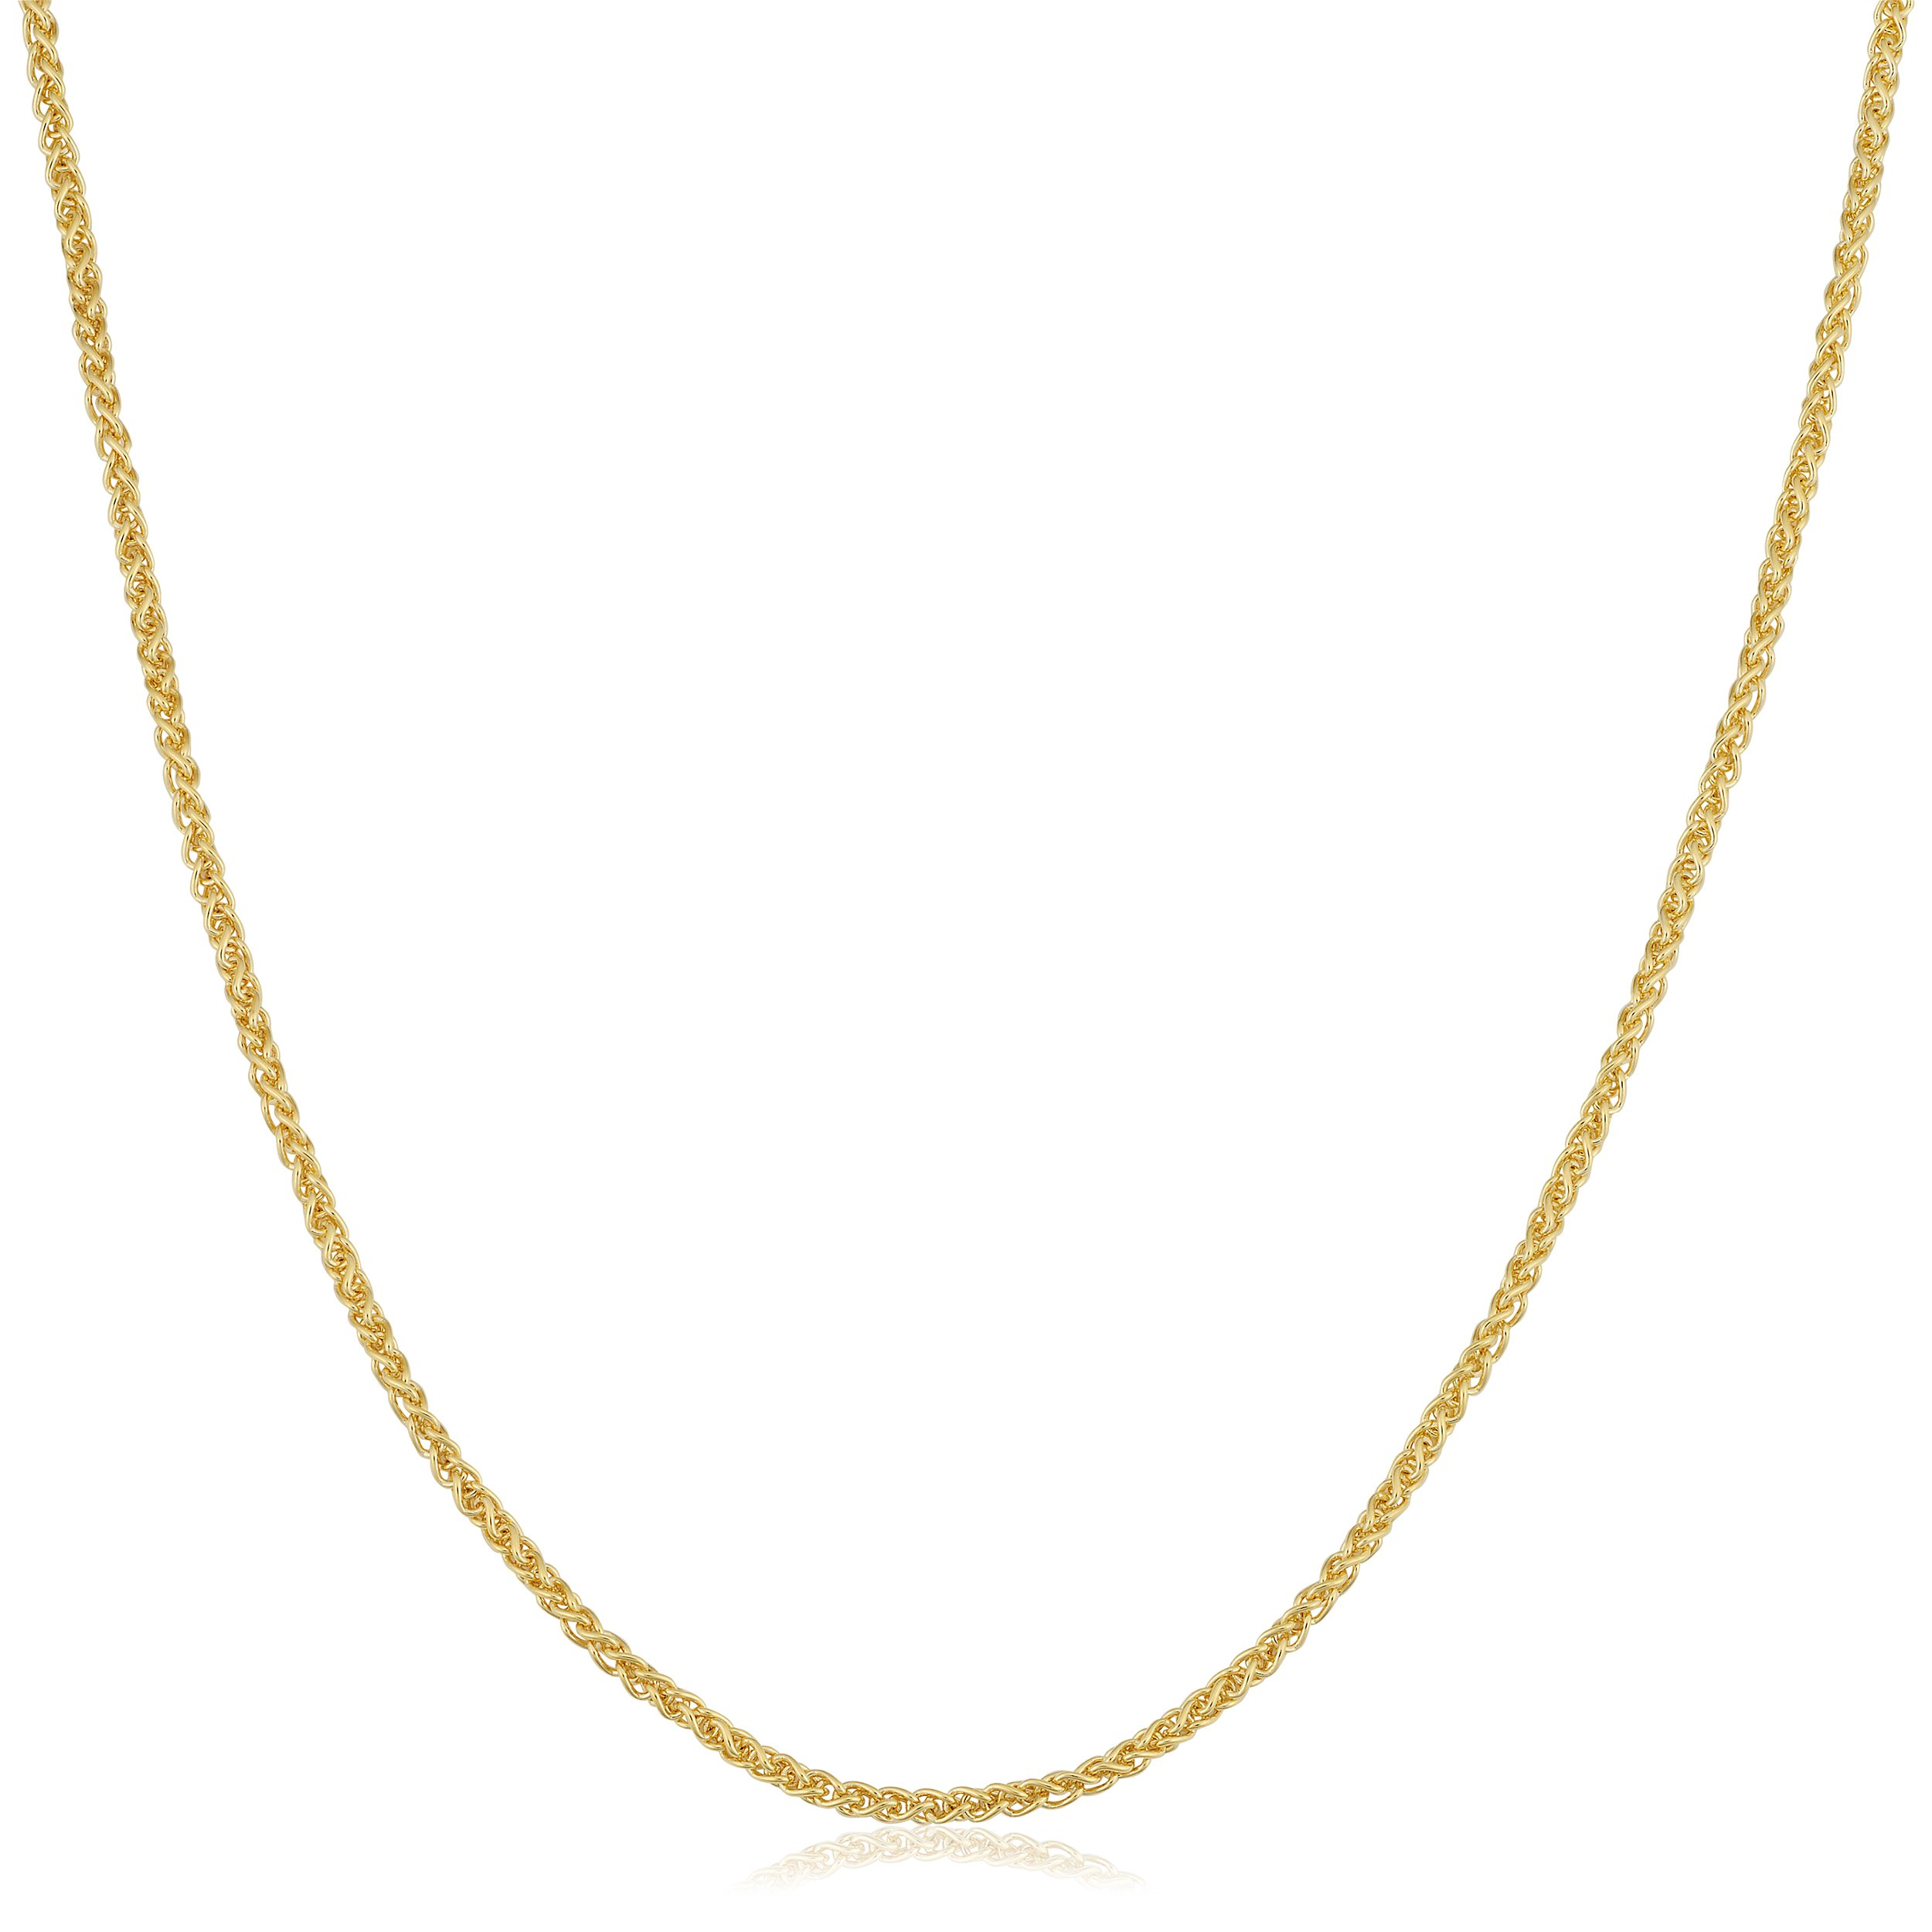 Kooljewelry 14k Yellow Gold Filled 1.5 mm Round Wheat Chain Necklace (22 inch)